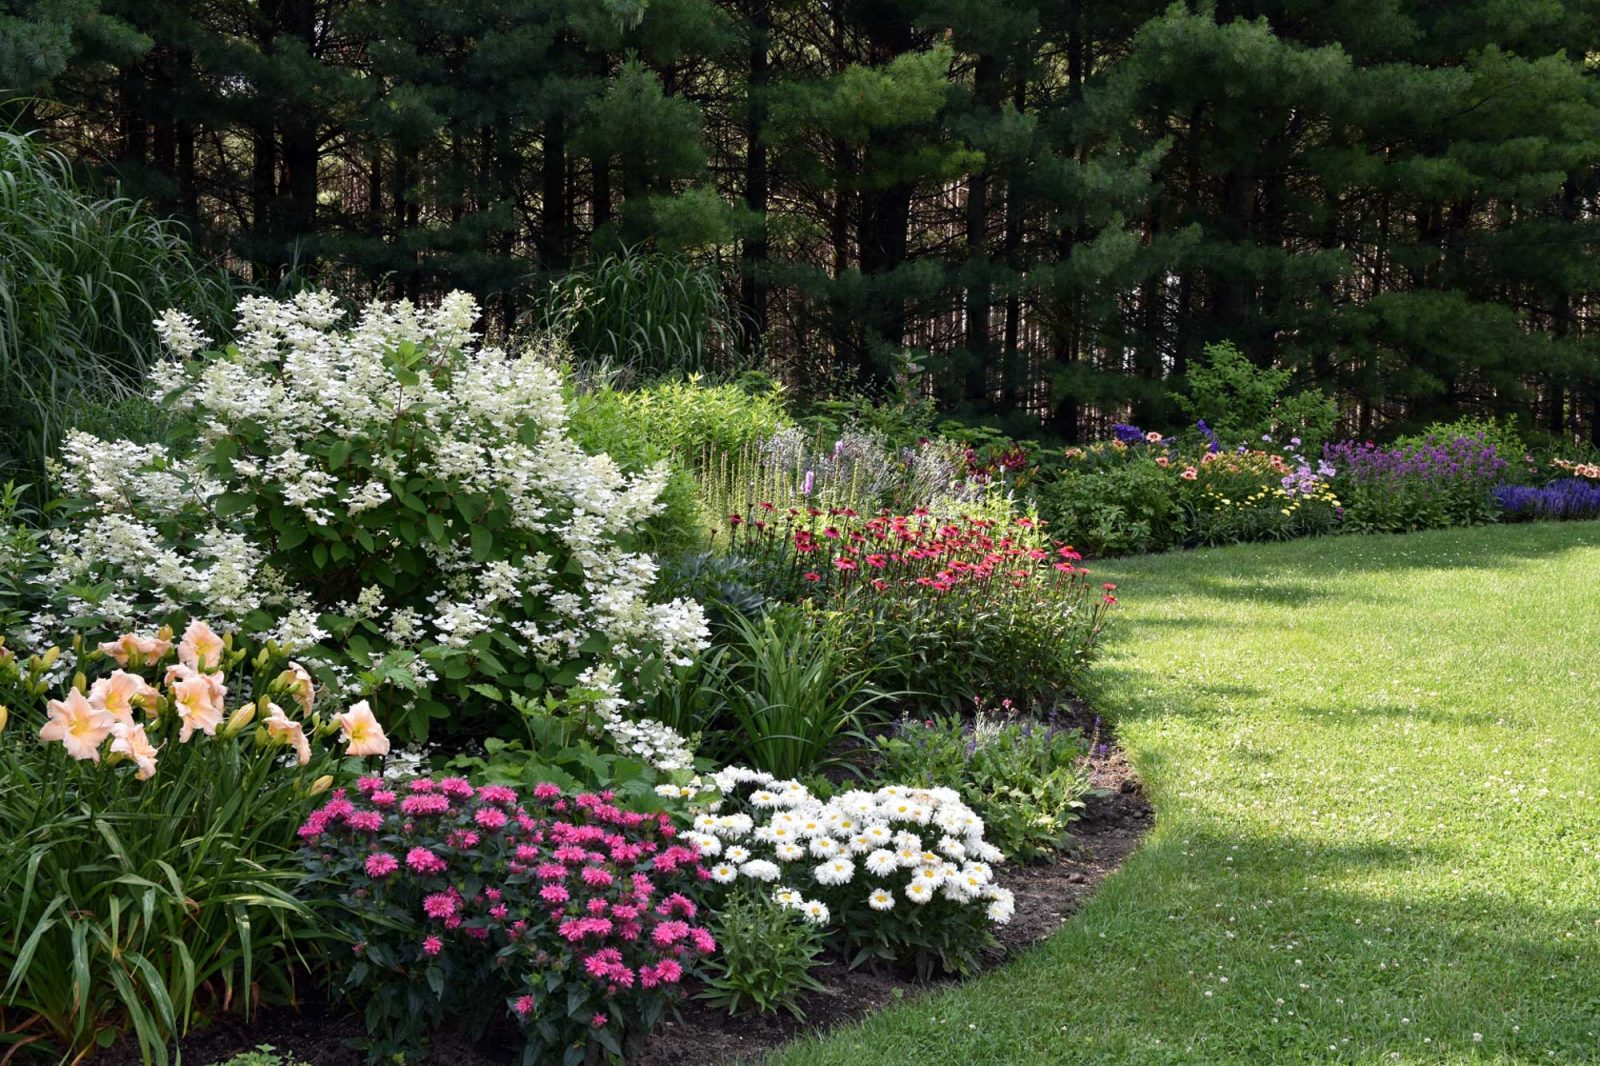 The Bed & Breakfast at Plant Paradise Country Gardens